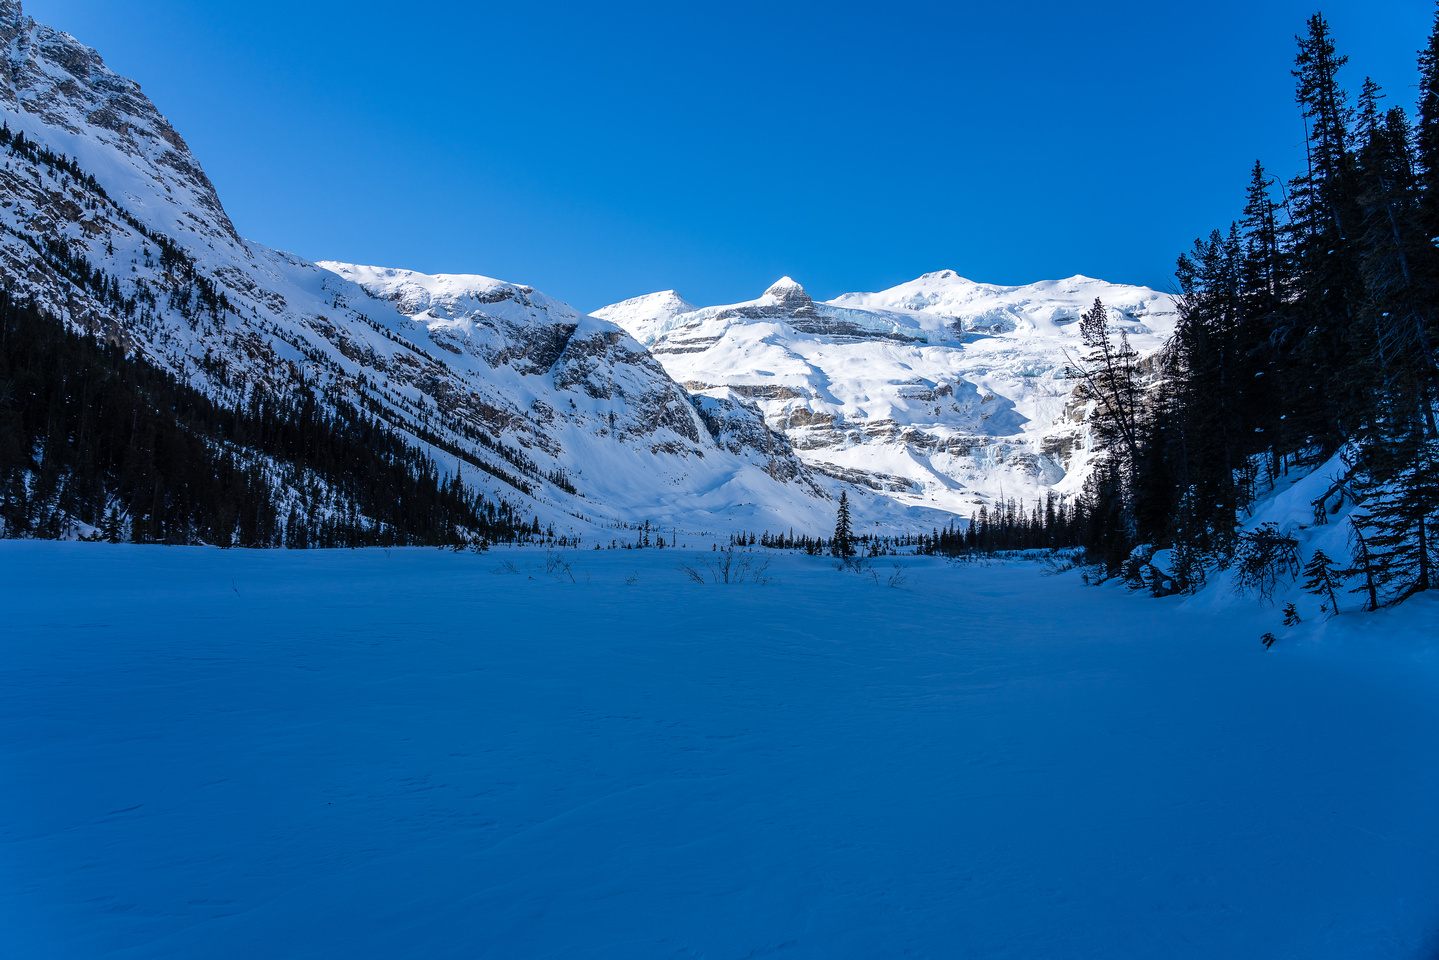 I skied here in 2010 when we exited the Waputik Glacier this way (from the left).